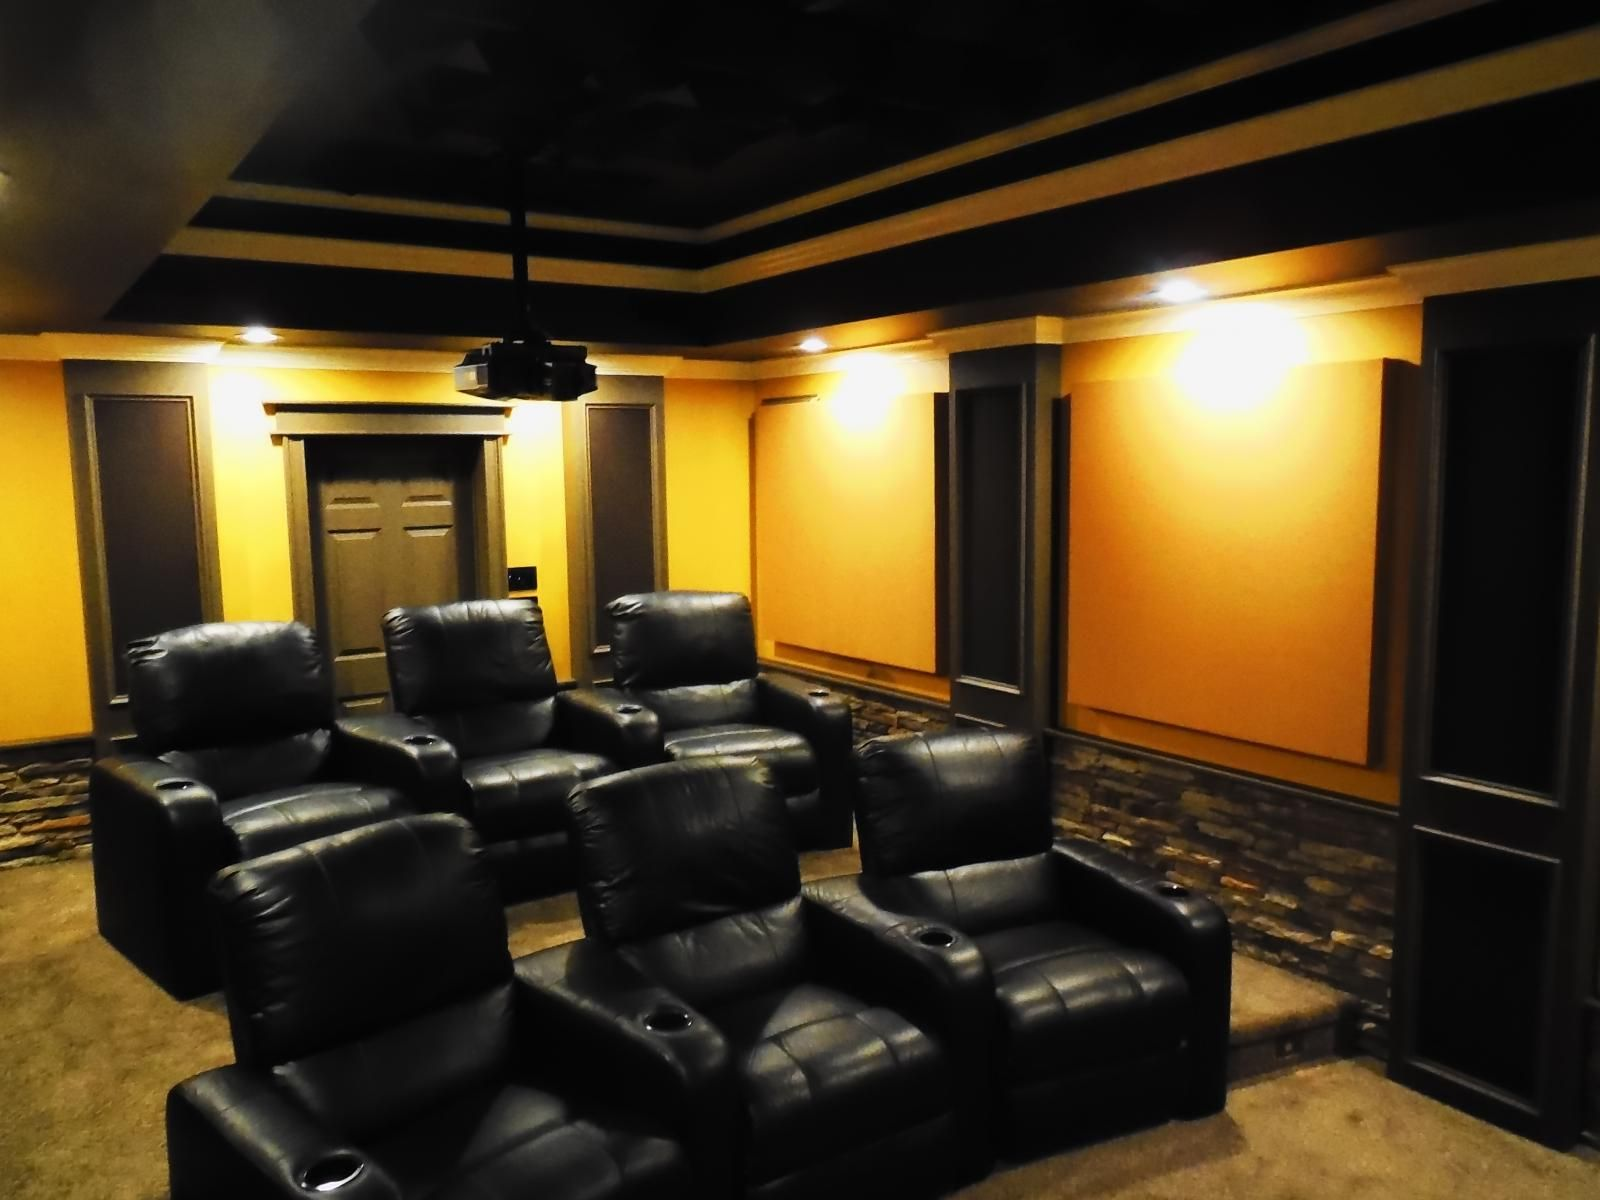 Creekside Stone Cinema  Avs Forum - Home Theater Discussions